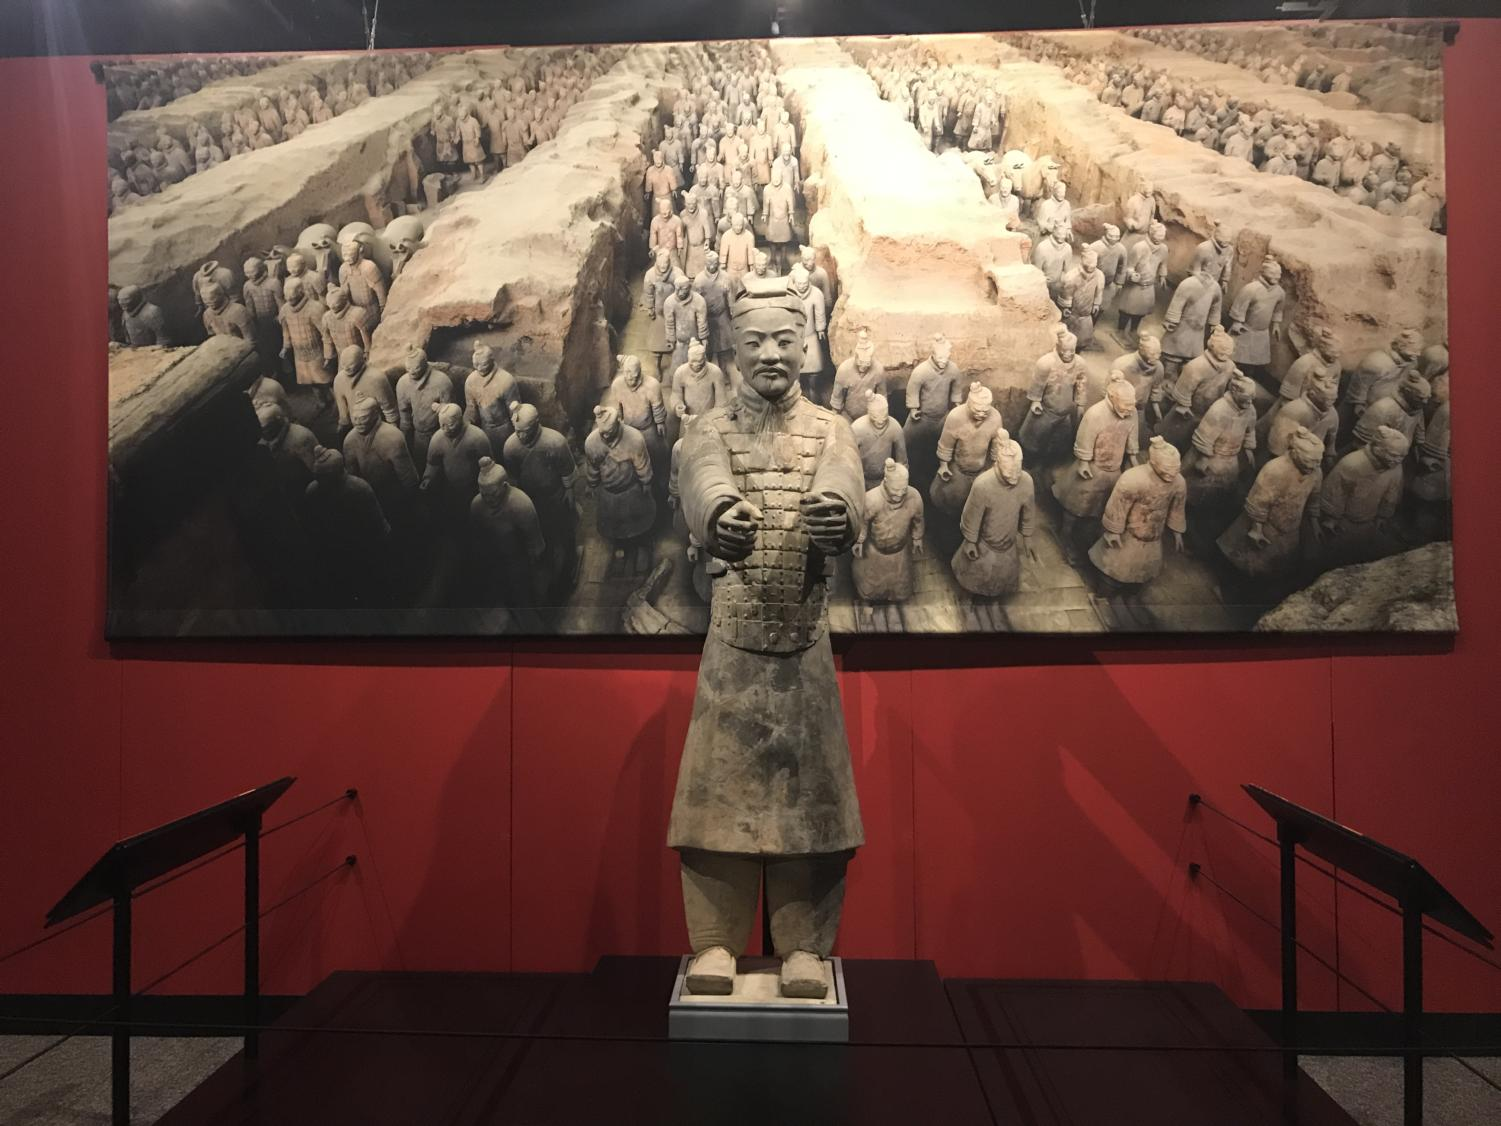 In addition to showcasing the original warriors from the burial site, the exhibit will also include various interactive tablets, videos and even augmented reality stations.